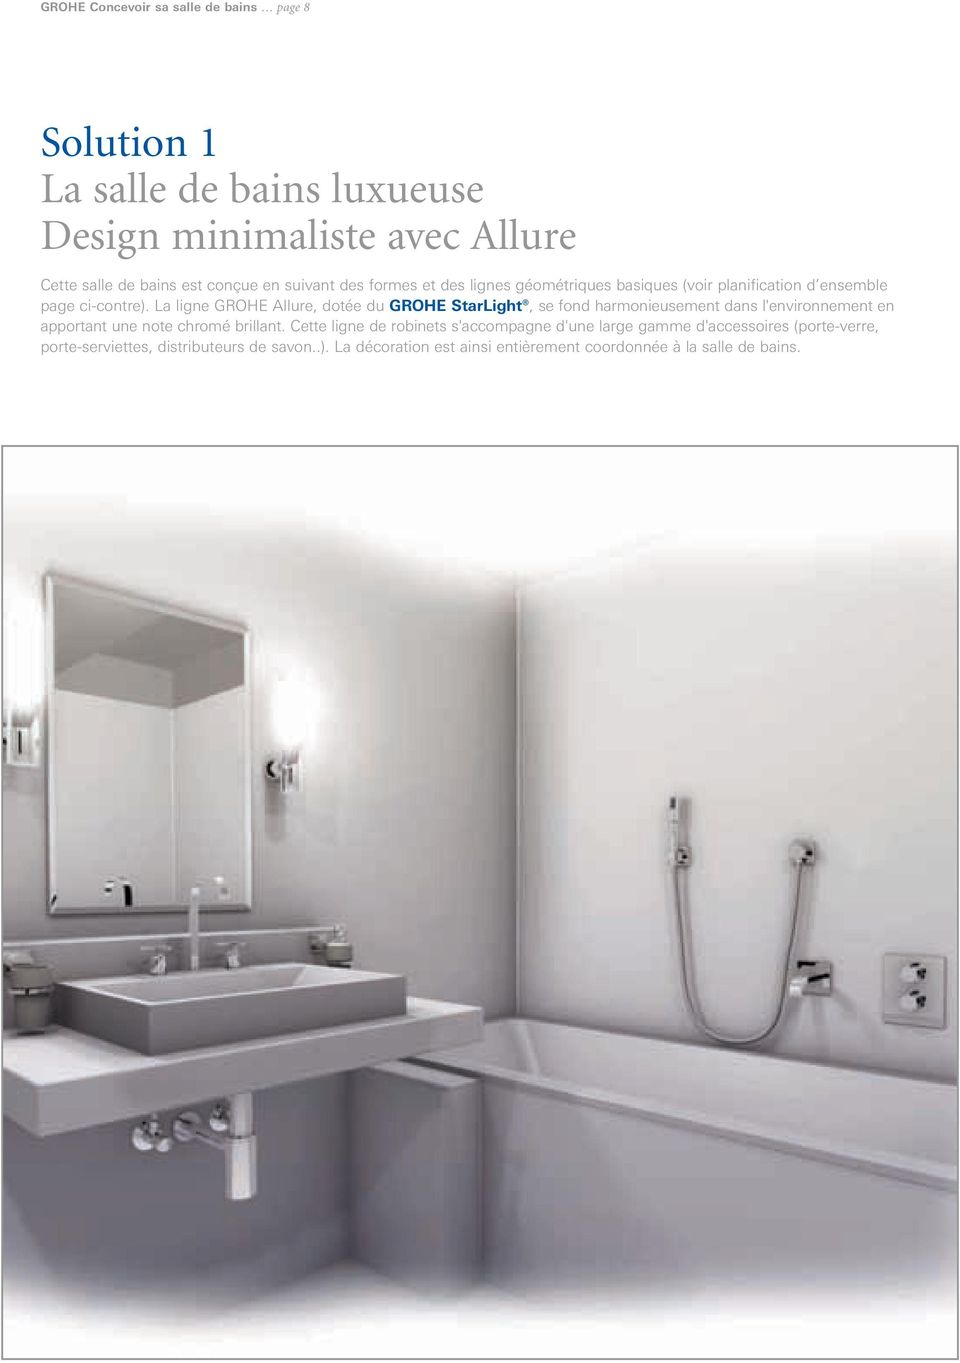 grohe concevoir sa salle de bains pdf. Black Bedroom Furniture Sets. Home Design Ideas